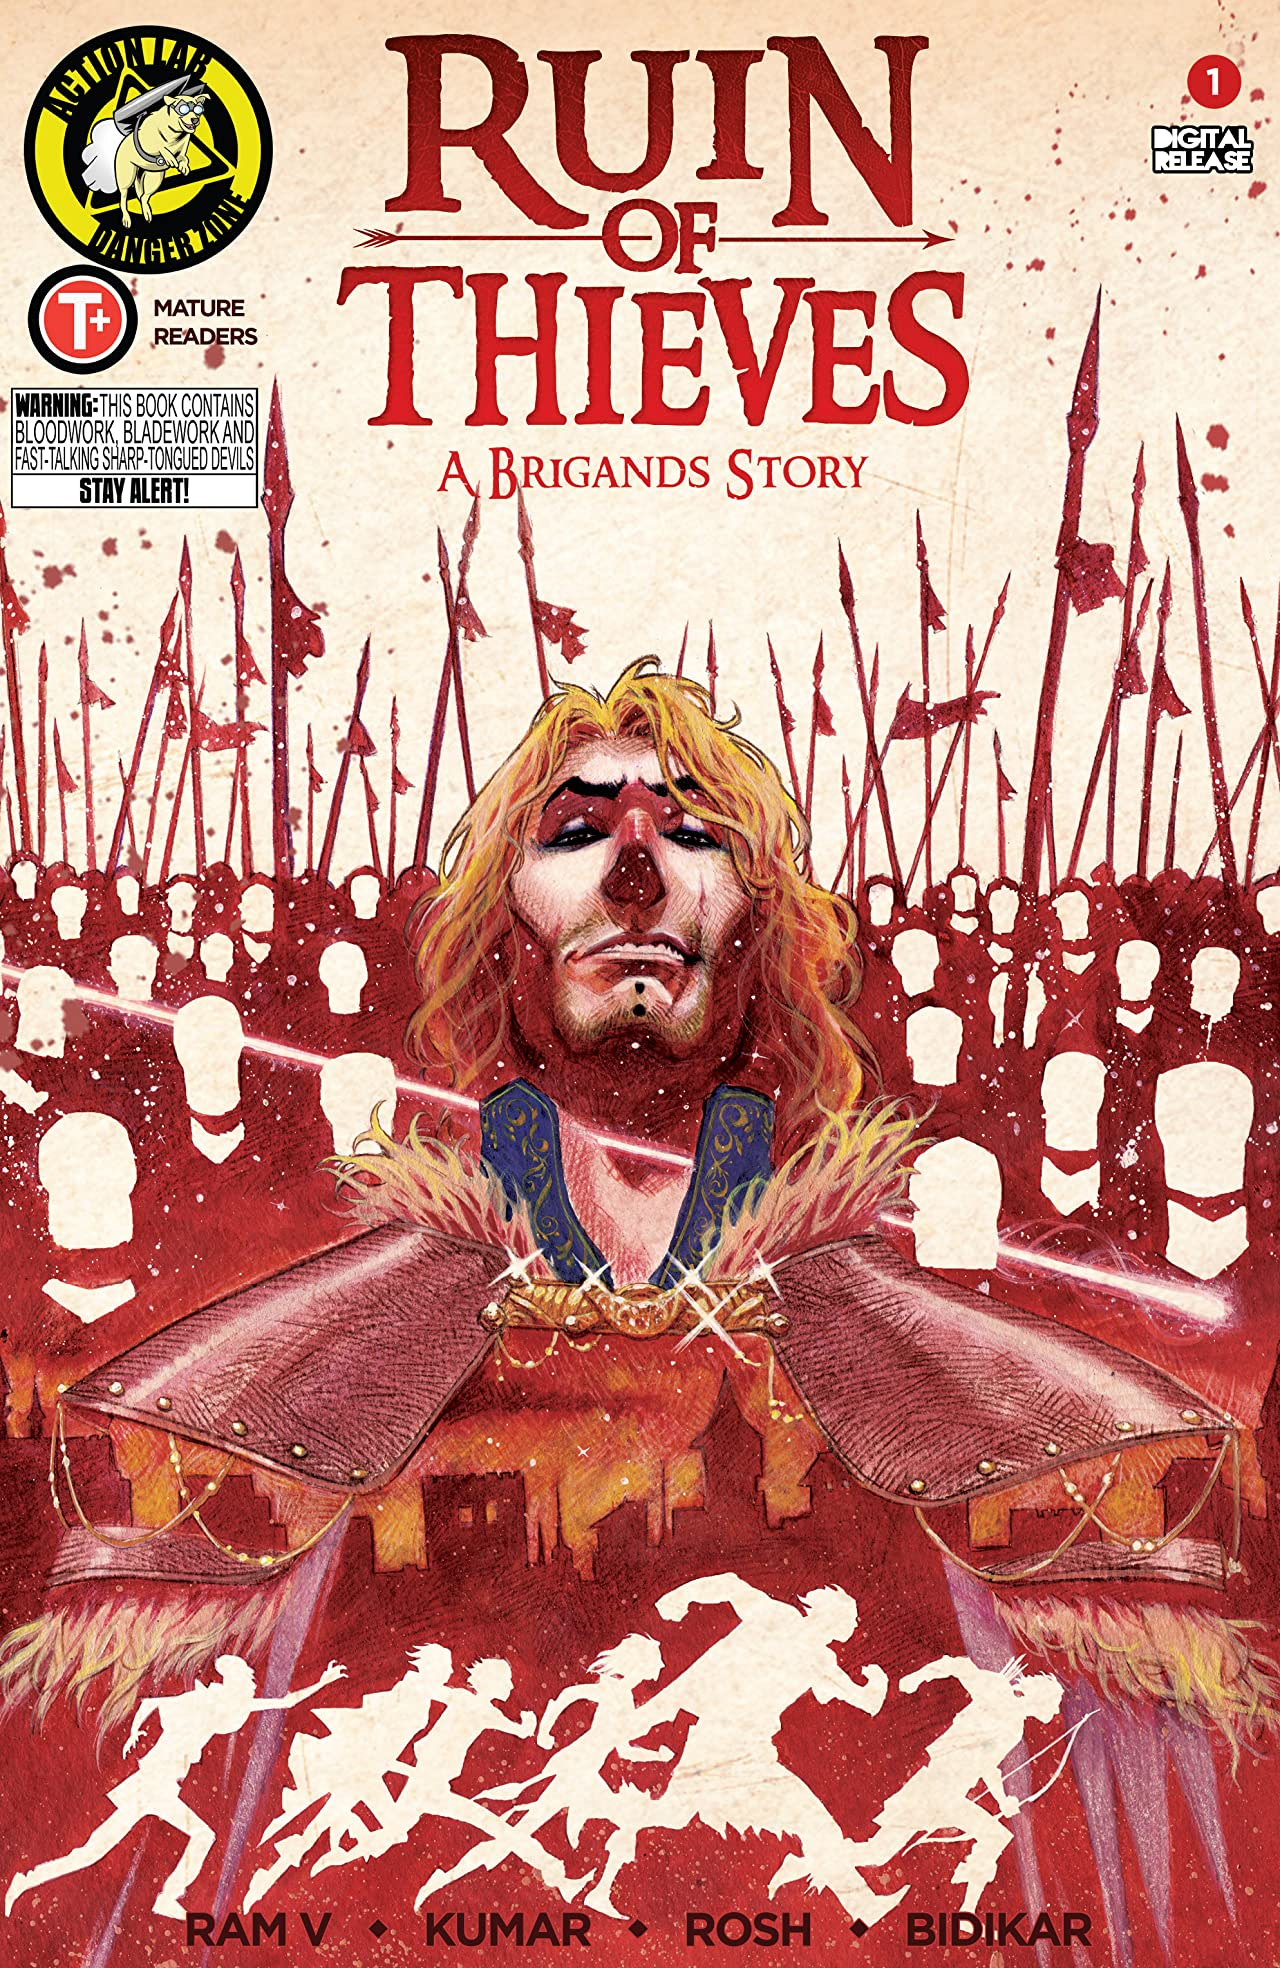 Ruin of Thieves: A Brigands Story #1